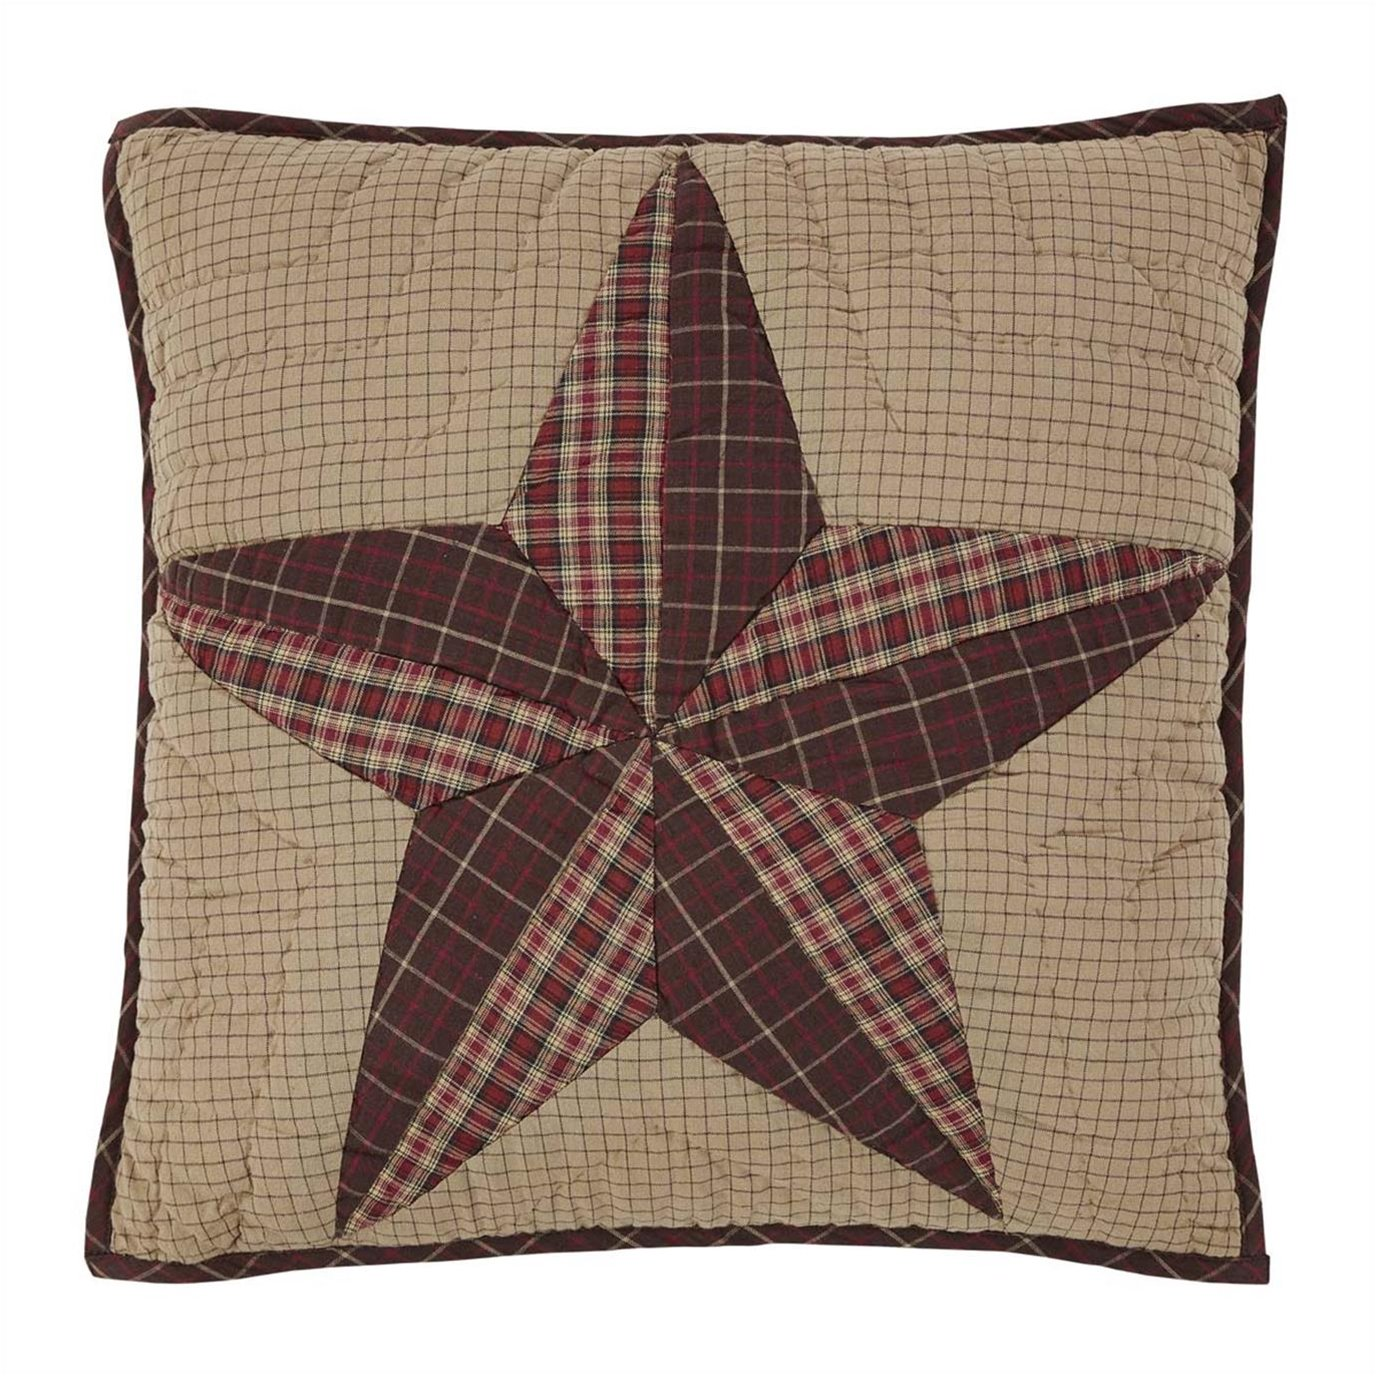 Landon Quilted Pillow 16x16